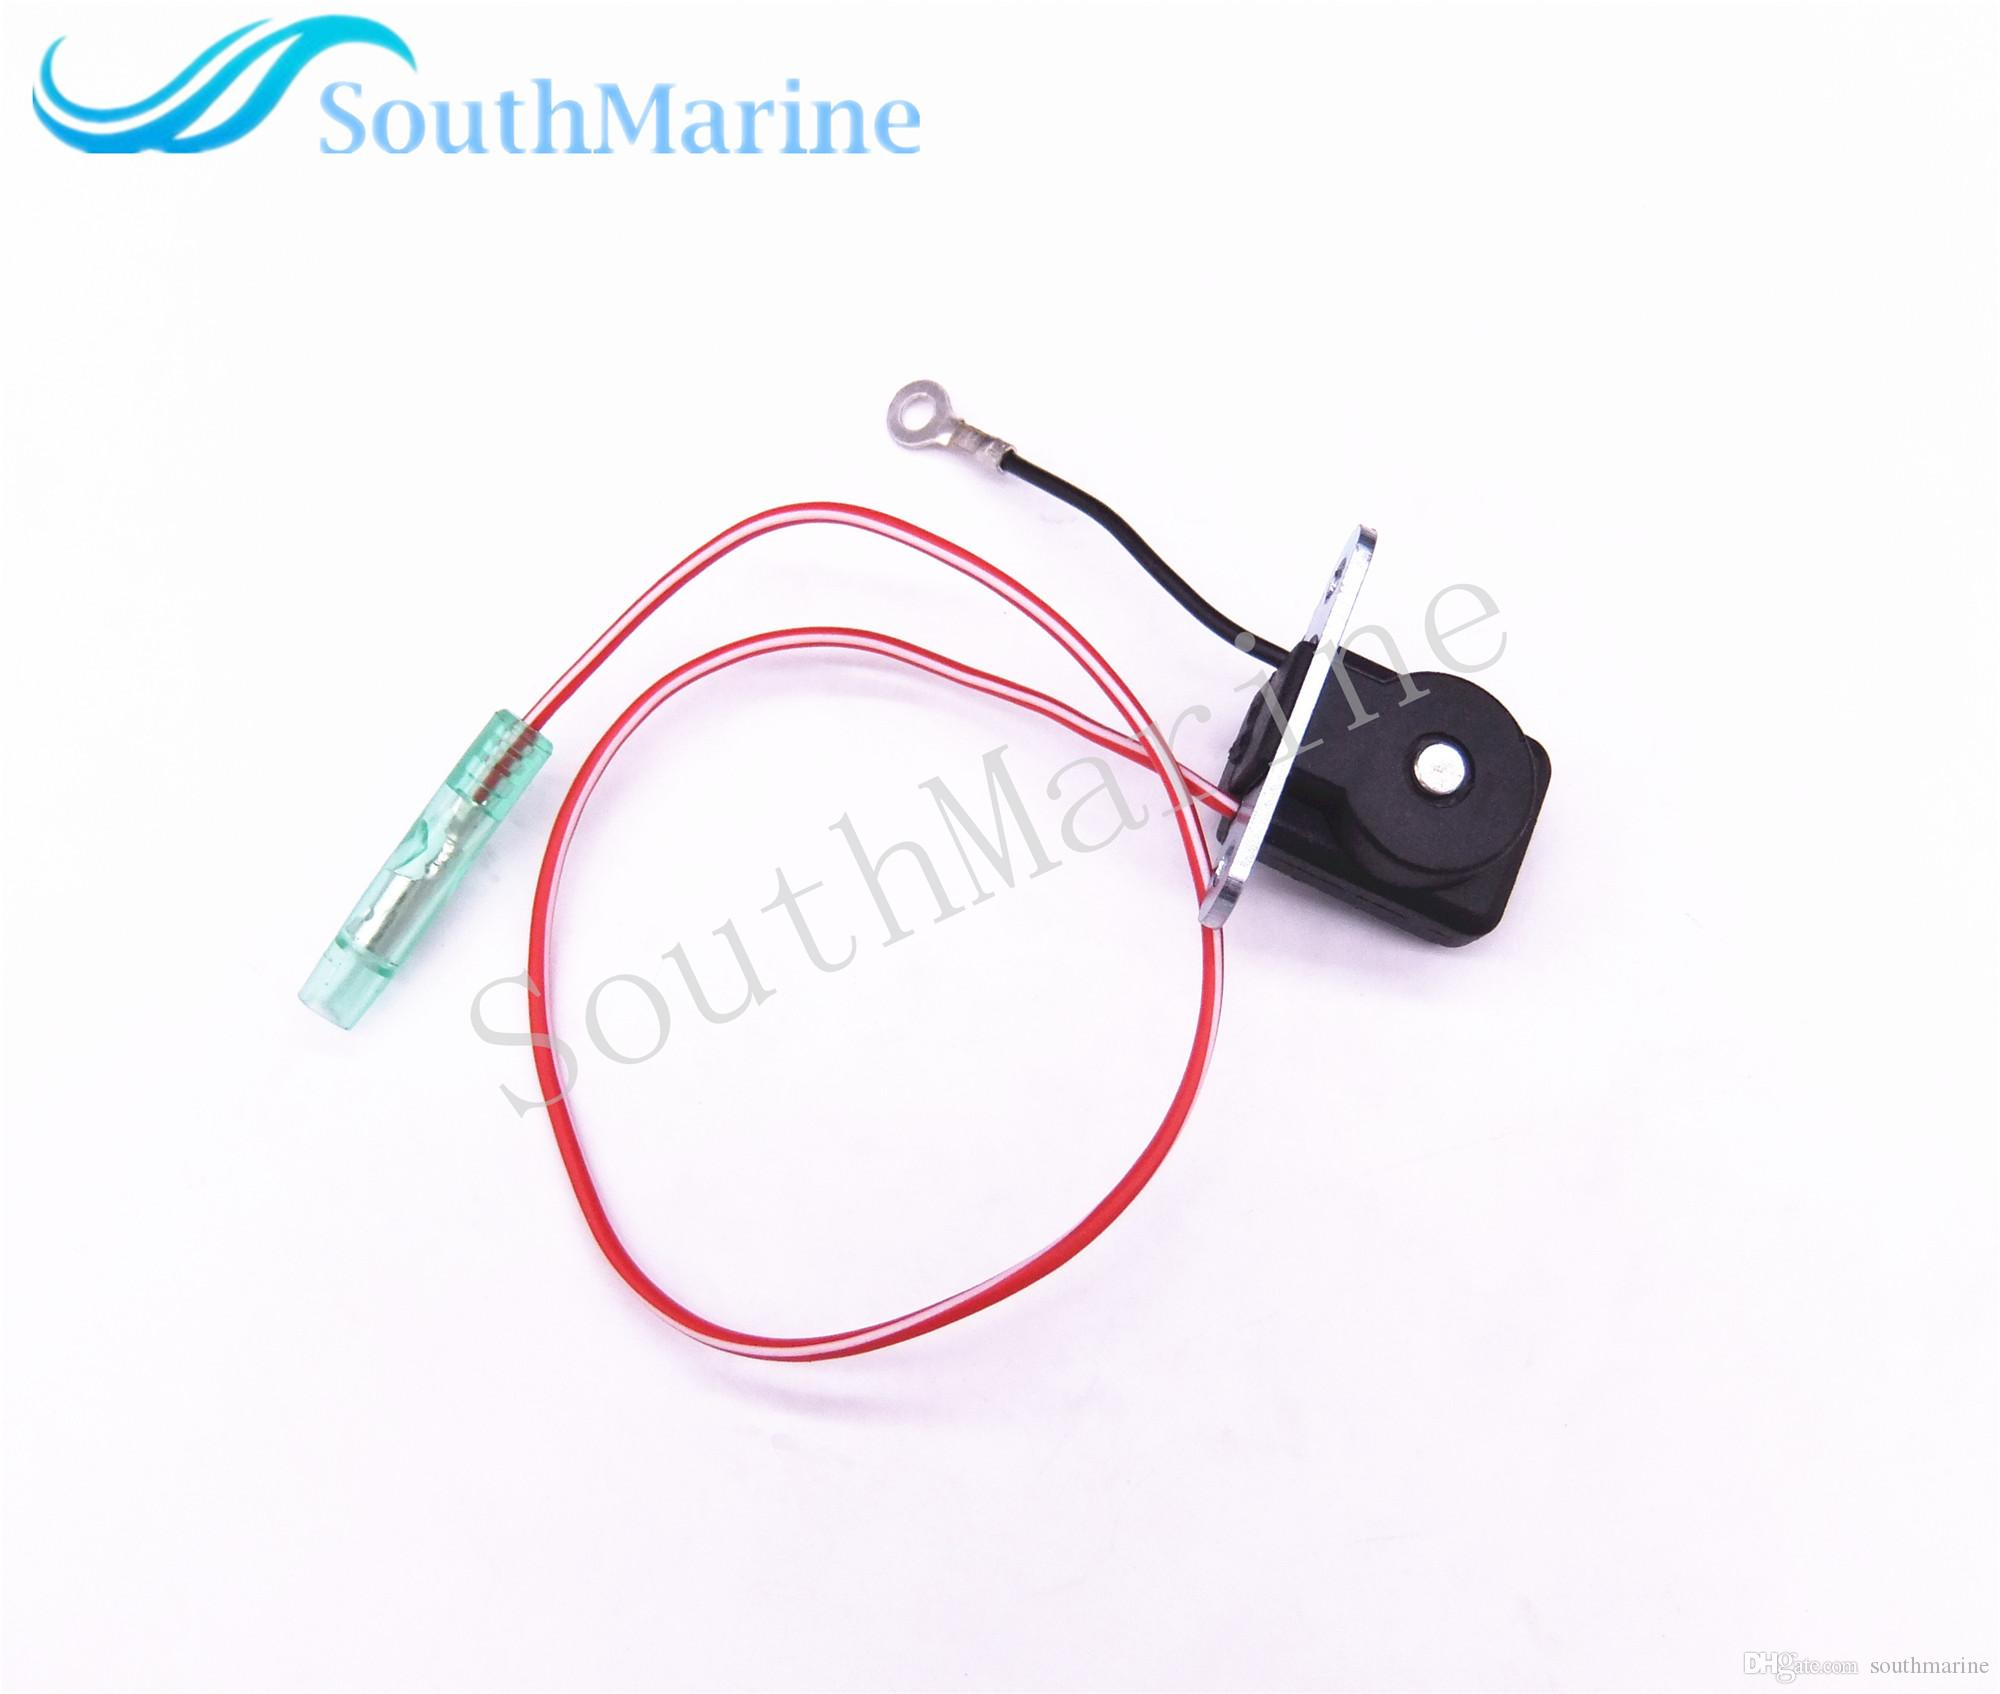 Boat Motor T5-05000100 Pulser Coil Assy for Parsun HDX 2-Stroke T4 T5 T5 8  Outboard Engine